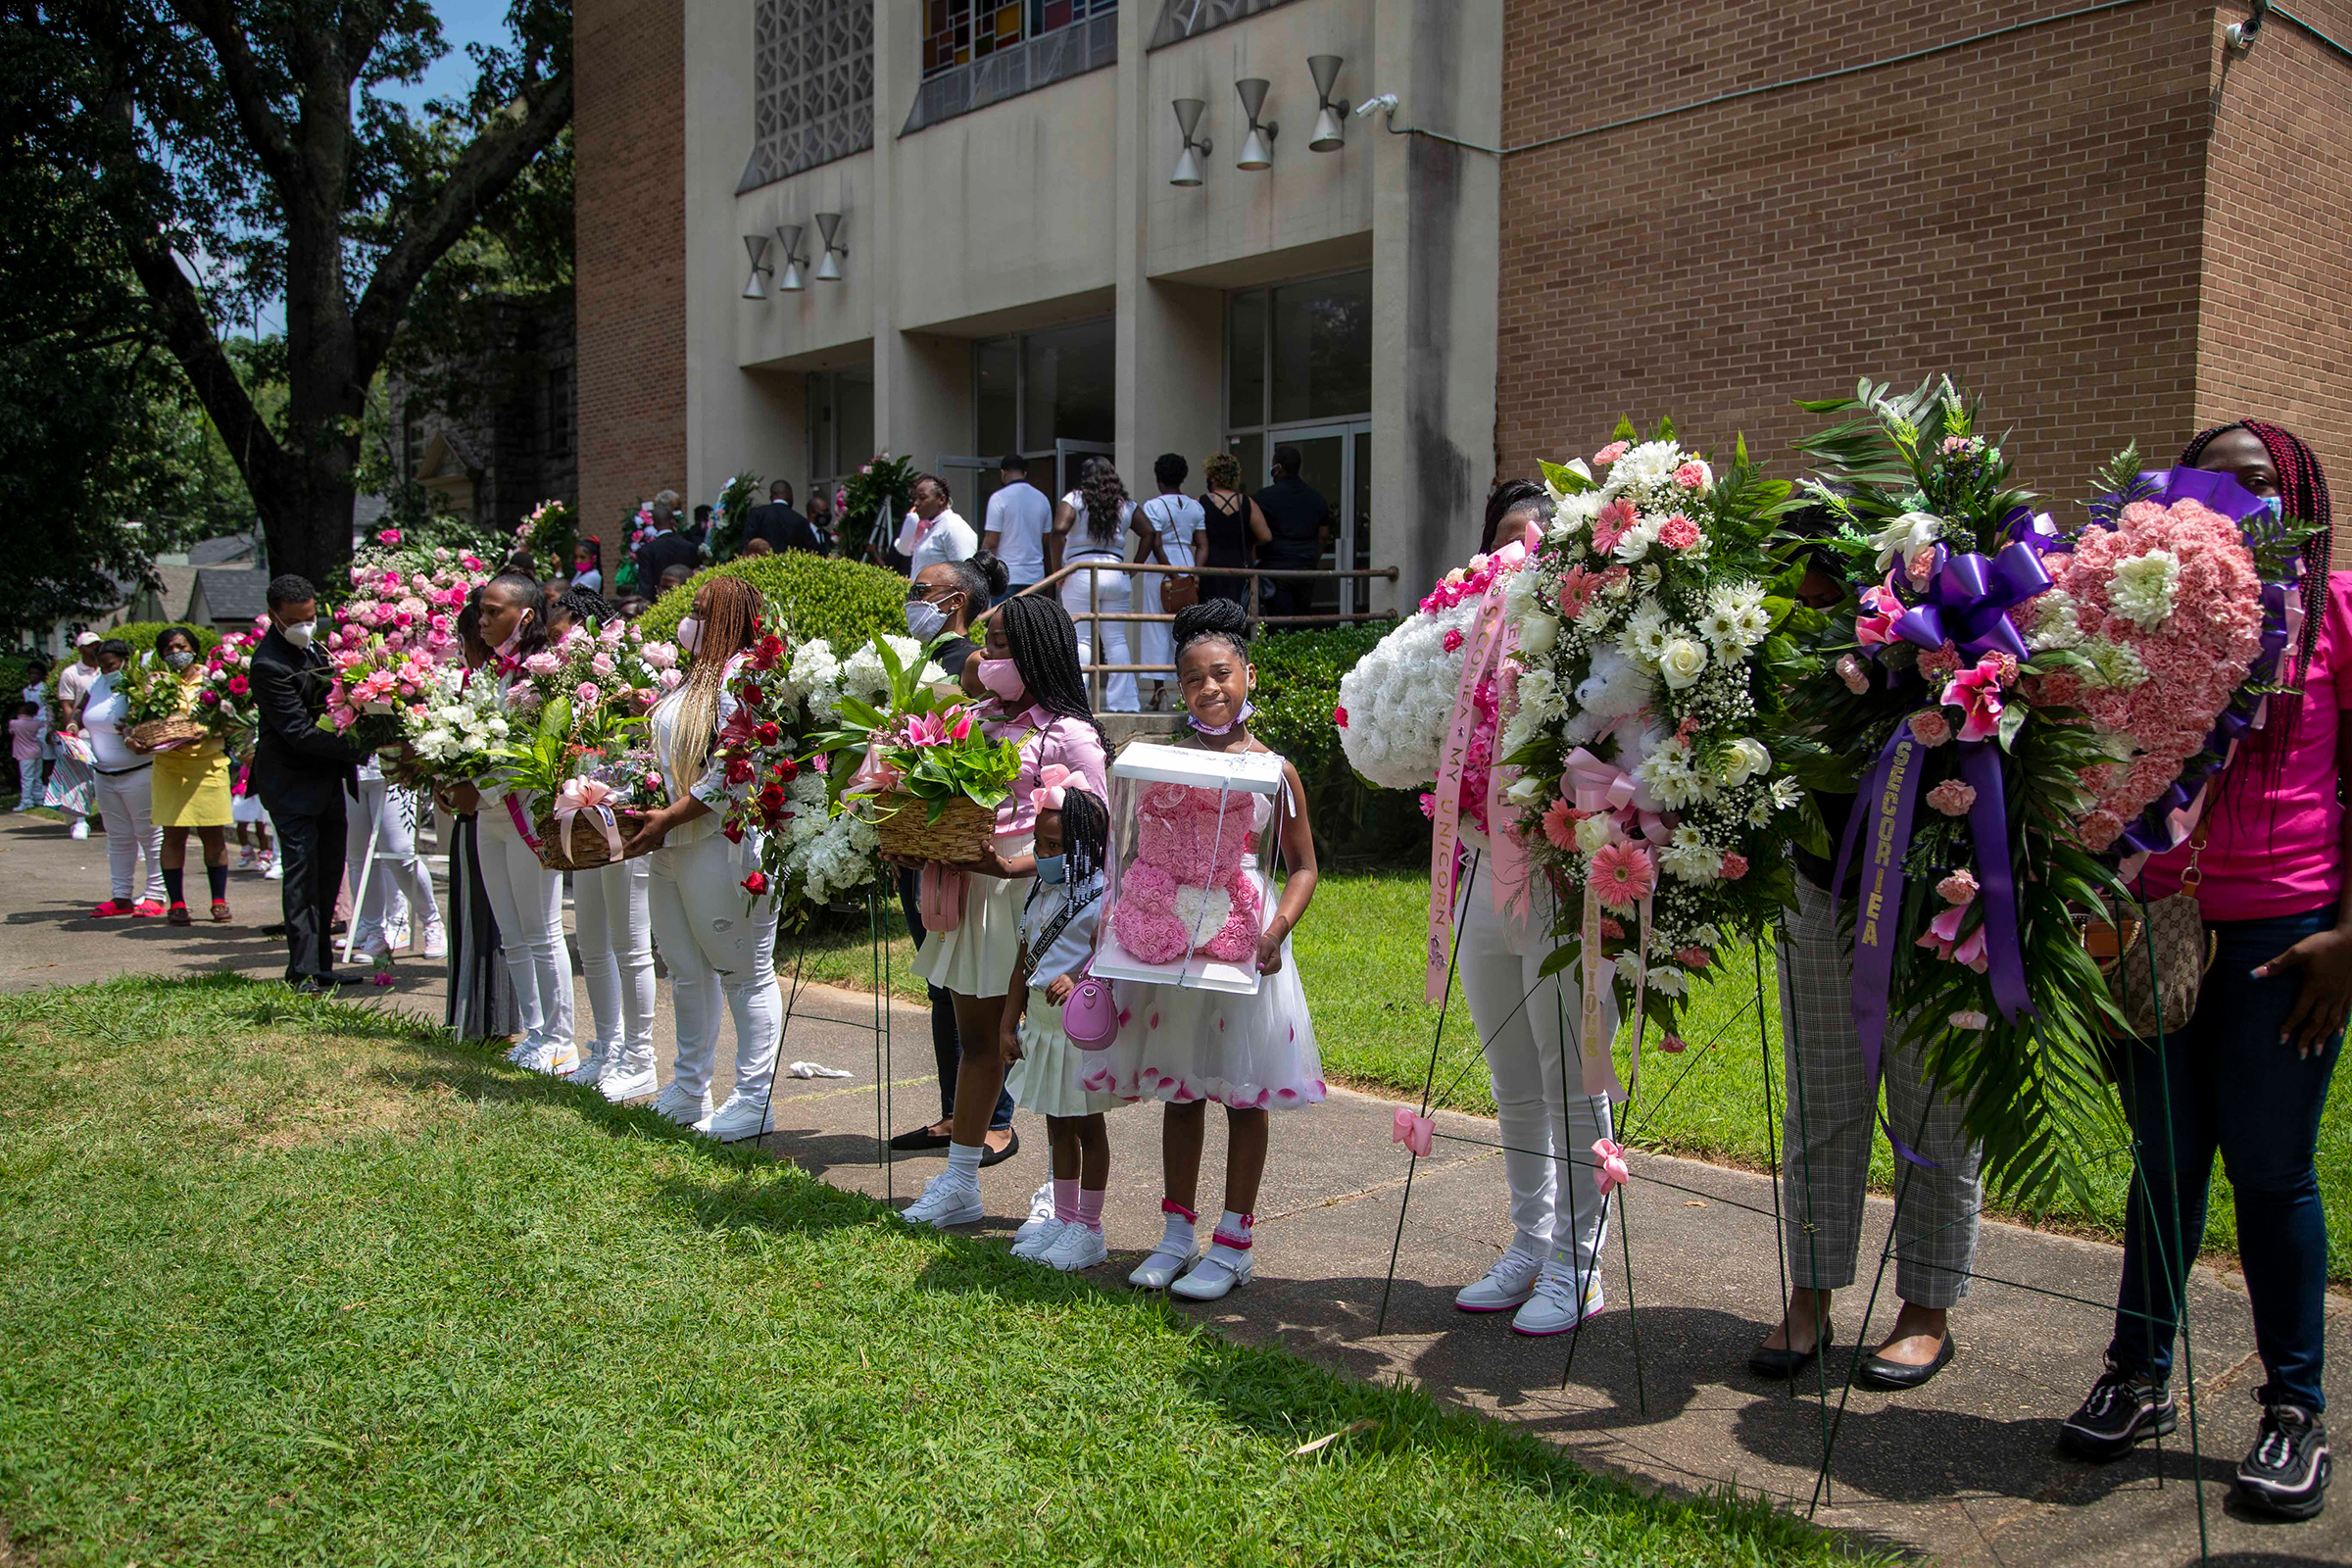 Family and friends of Secoriea Turner, an eight-year-old who was fatally shot while in a car with her mother near the site where Rayshard Brooks was killed by a police officer weeks earlier, leading to protests against police brutality, present floral arrangements during her home-going service at New Calvary Missionary Baptist Church in Atlanta on July 15.